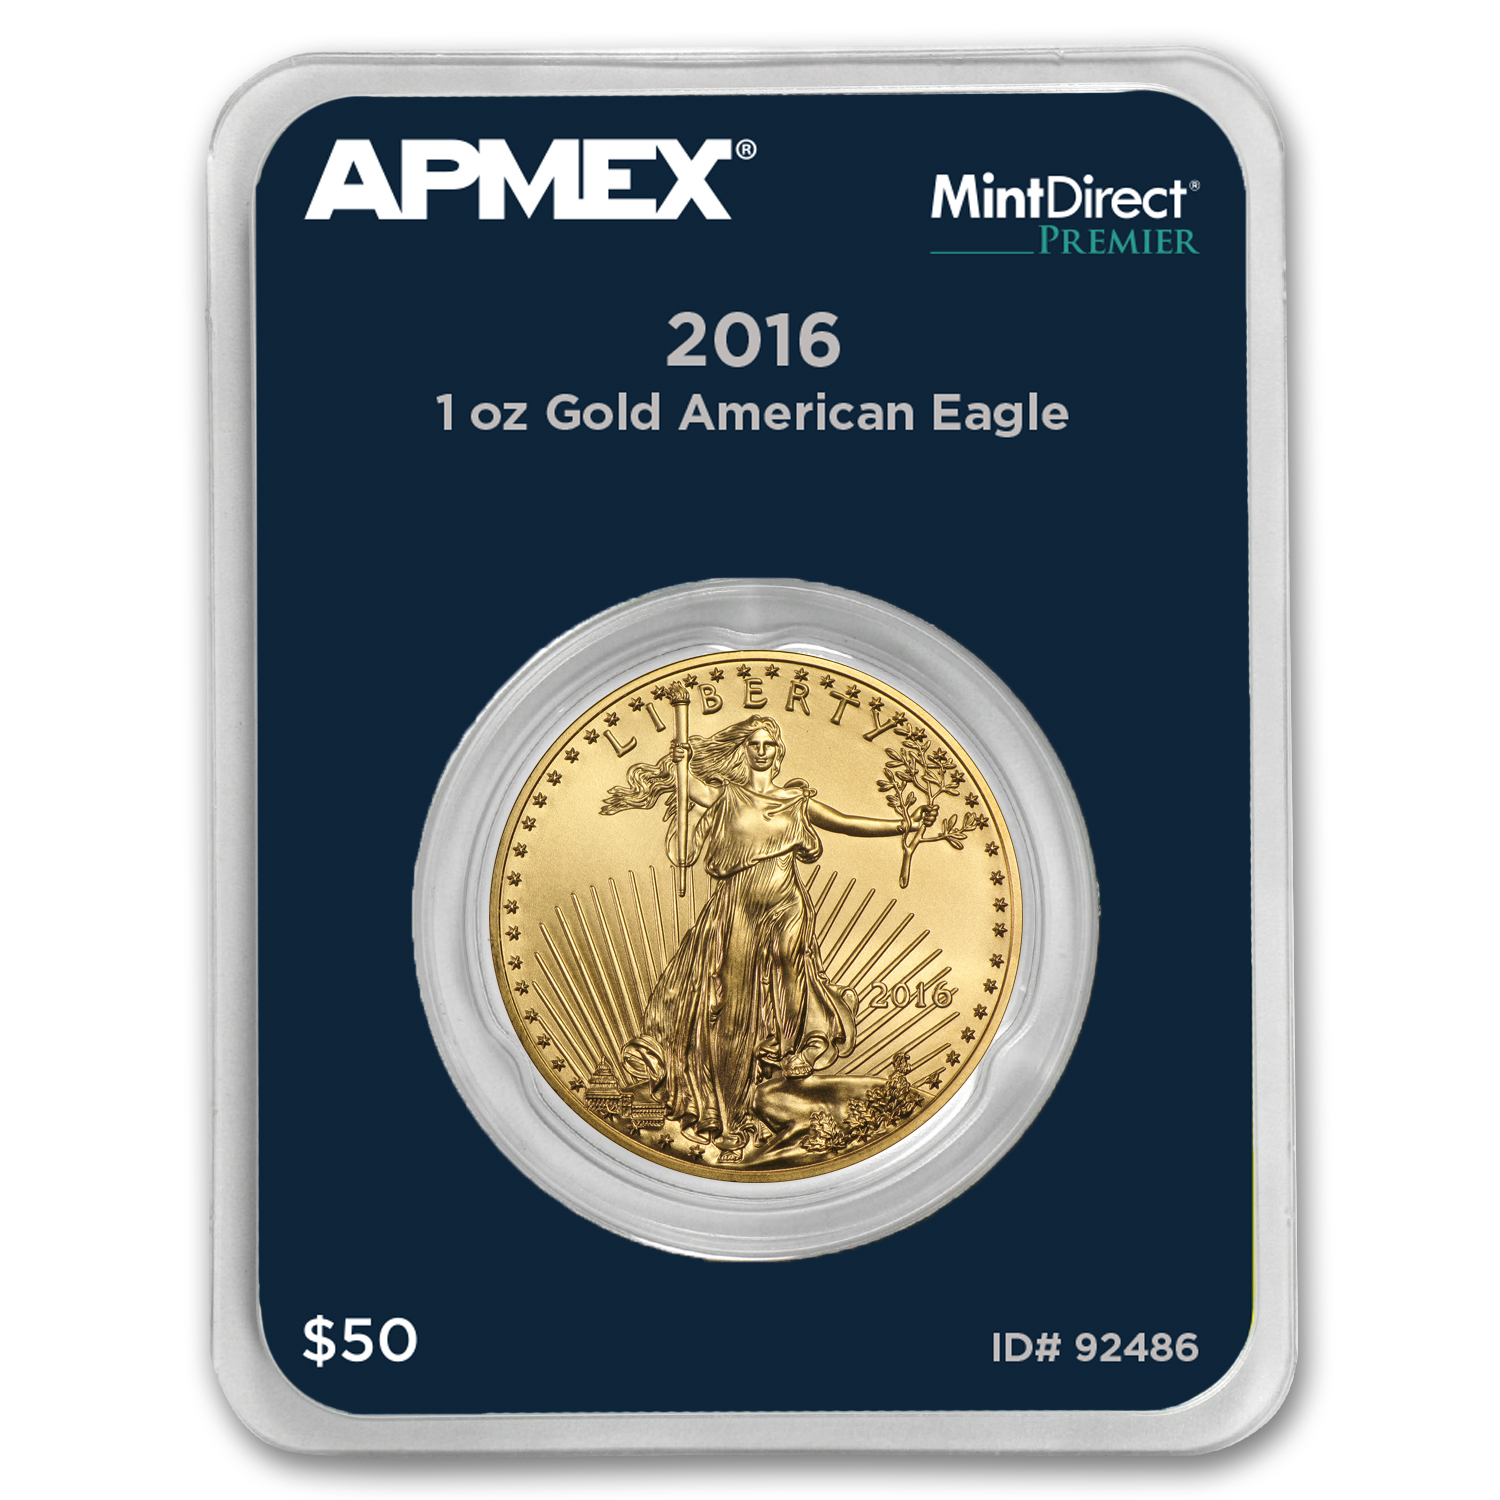 2016 1 oz Gold Eagle (MintDirect® Premier Single)